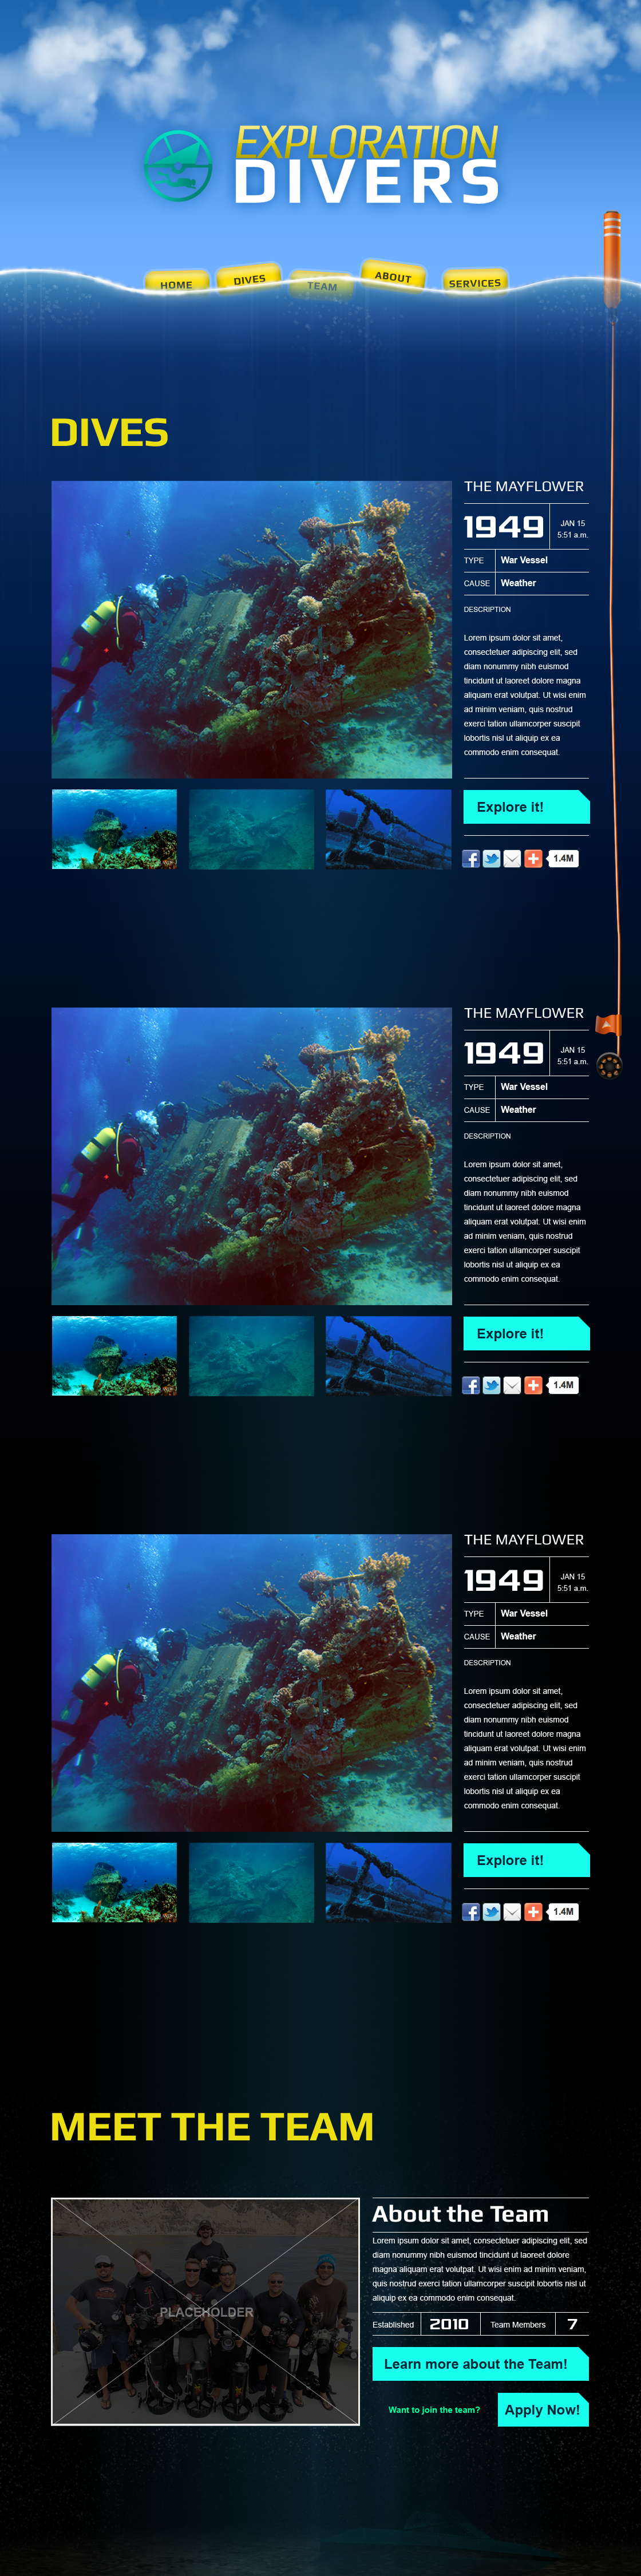 Exploration Divers Mockup 1